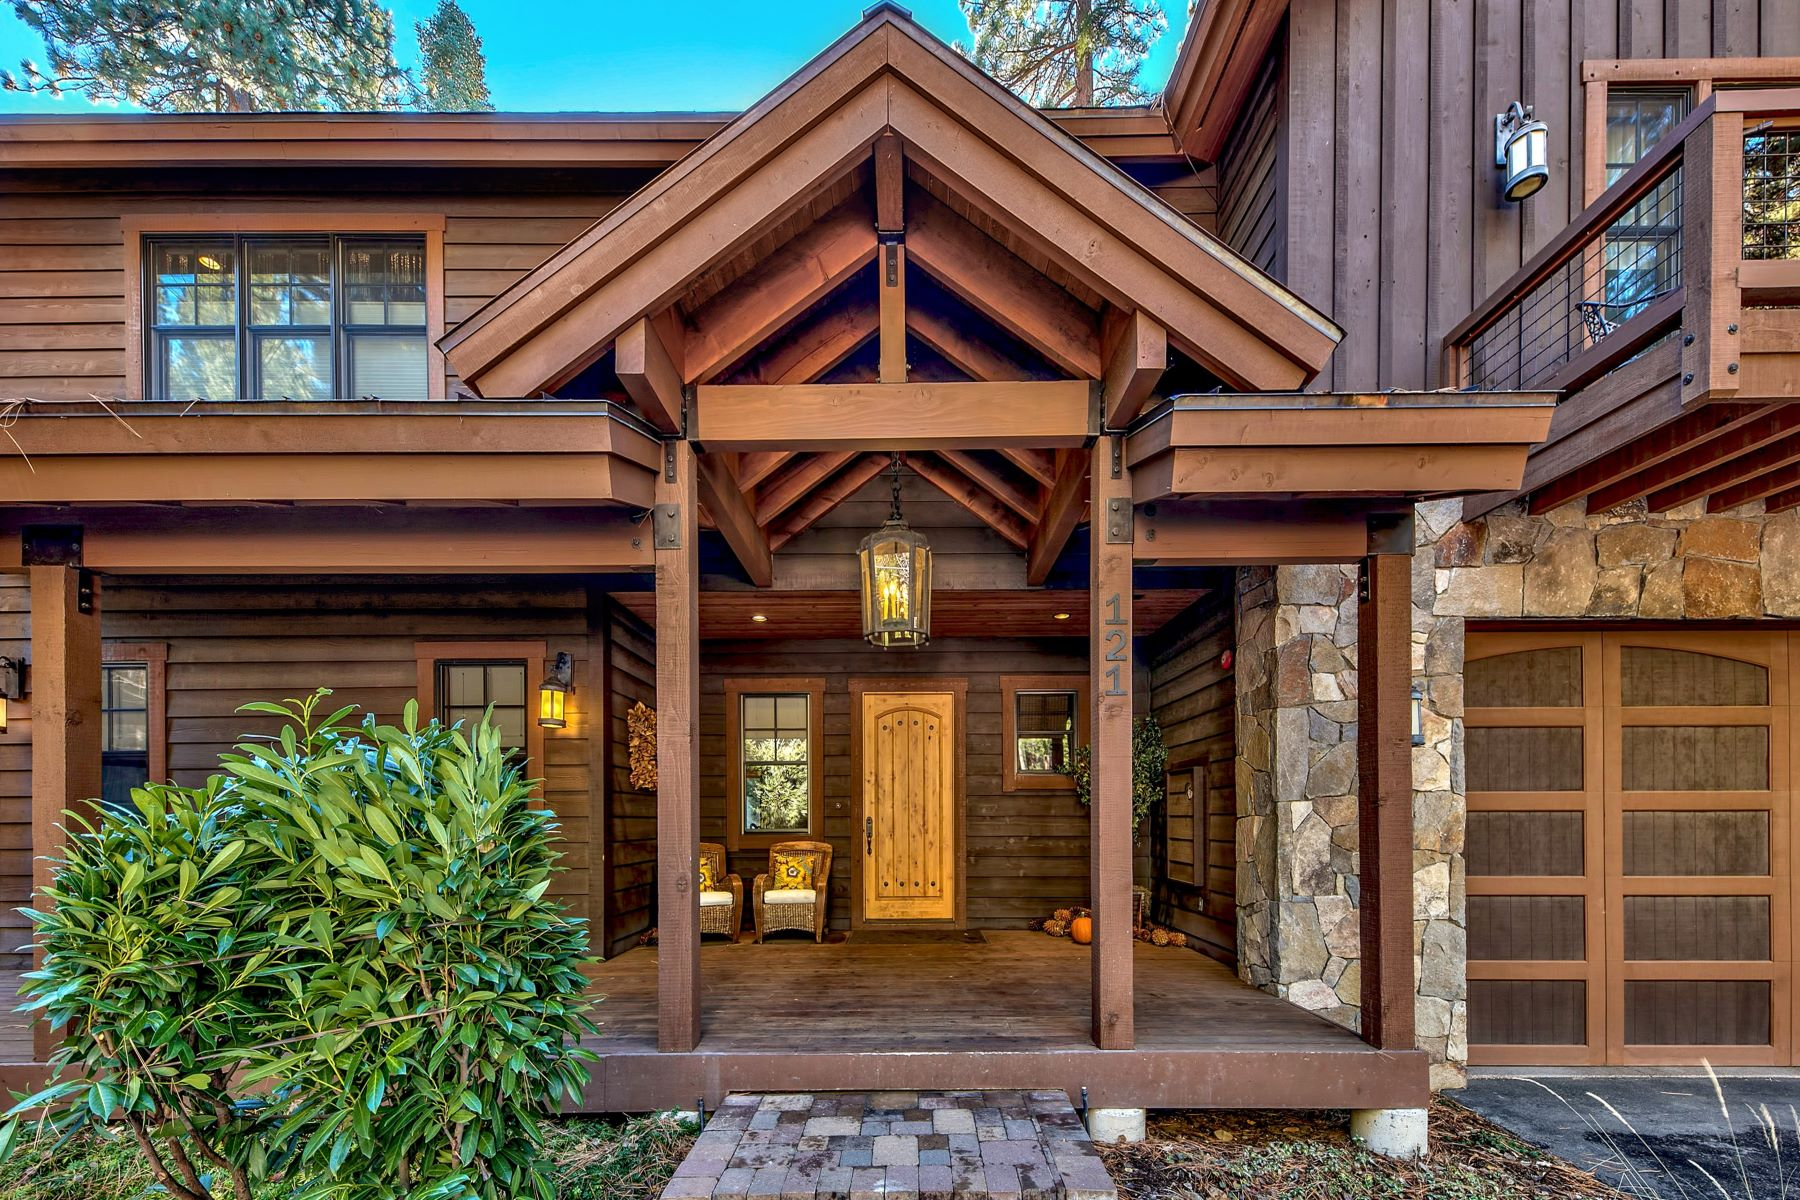 Property for Active at The Ultimate Lifestyle Home 121 Mayhew Circle Incline Village, Nevada 89450 United States